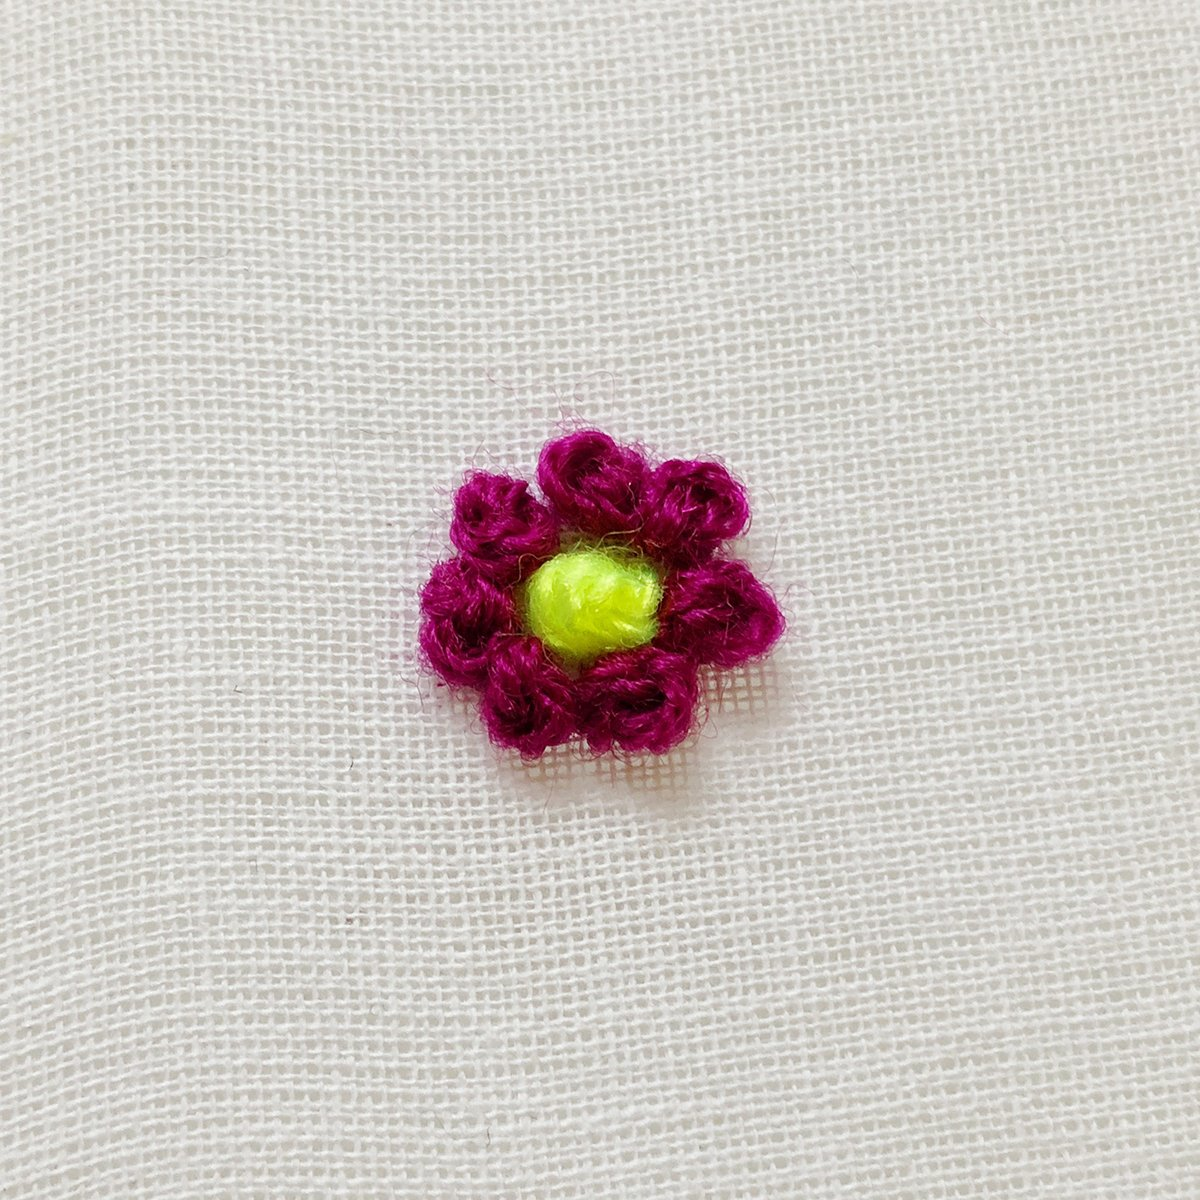 Embroidery - French Knot - 08